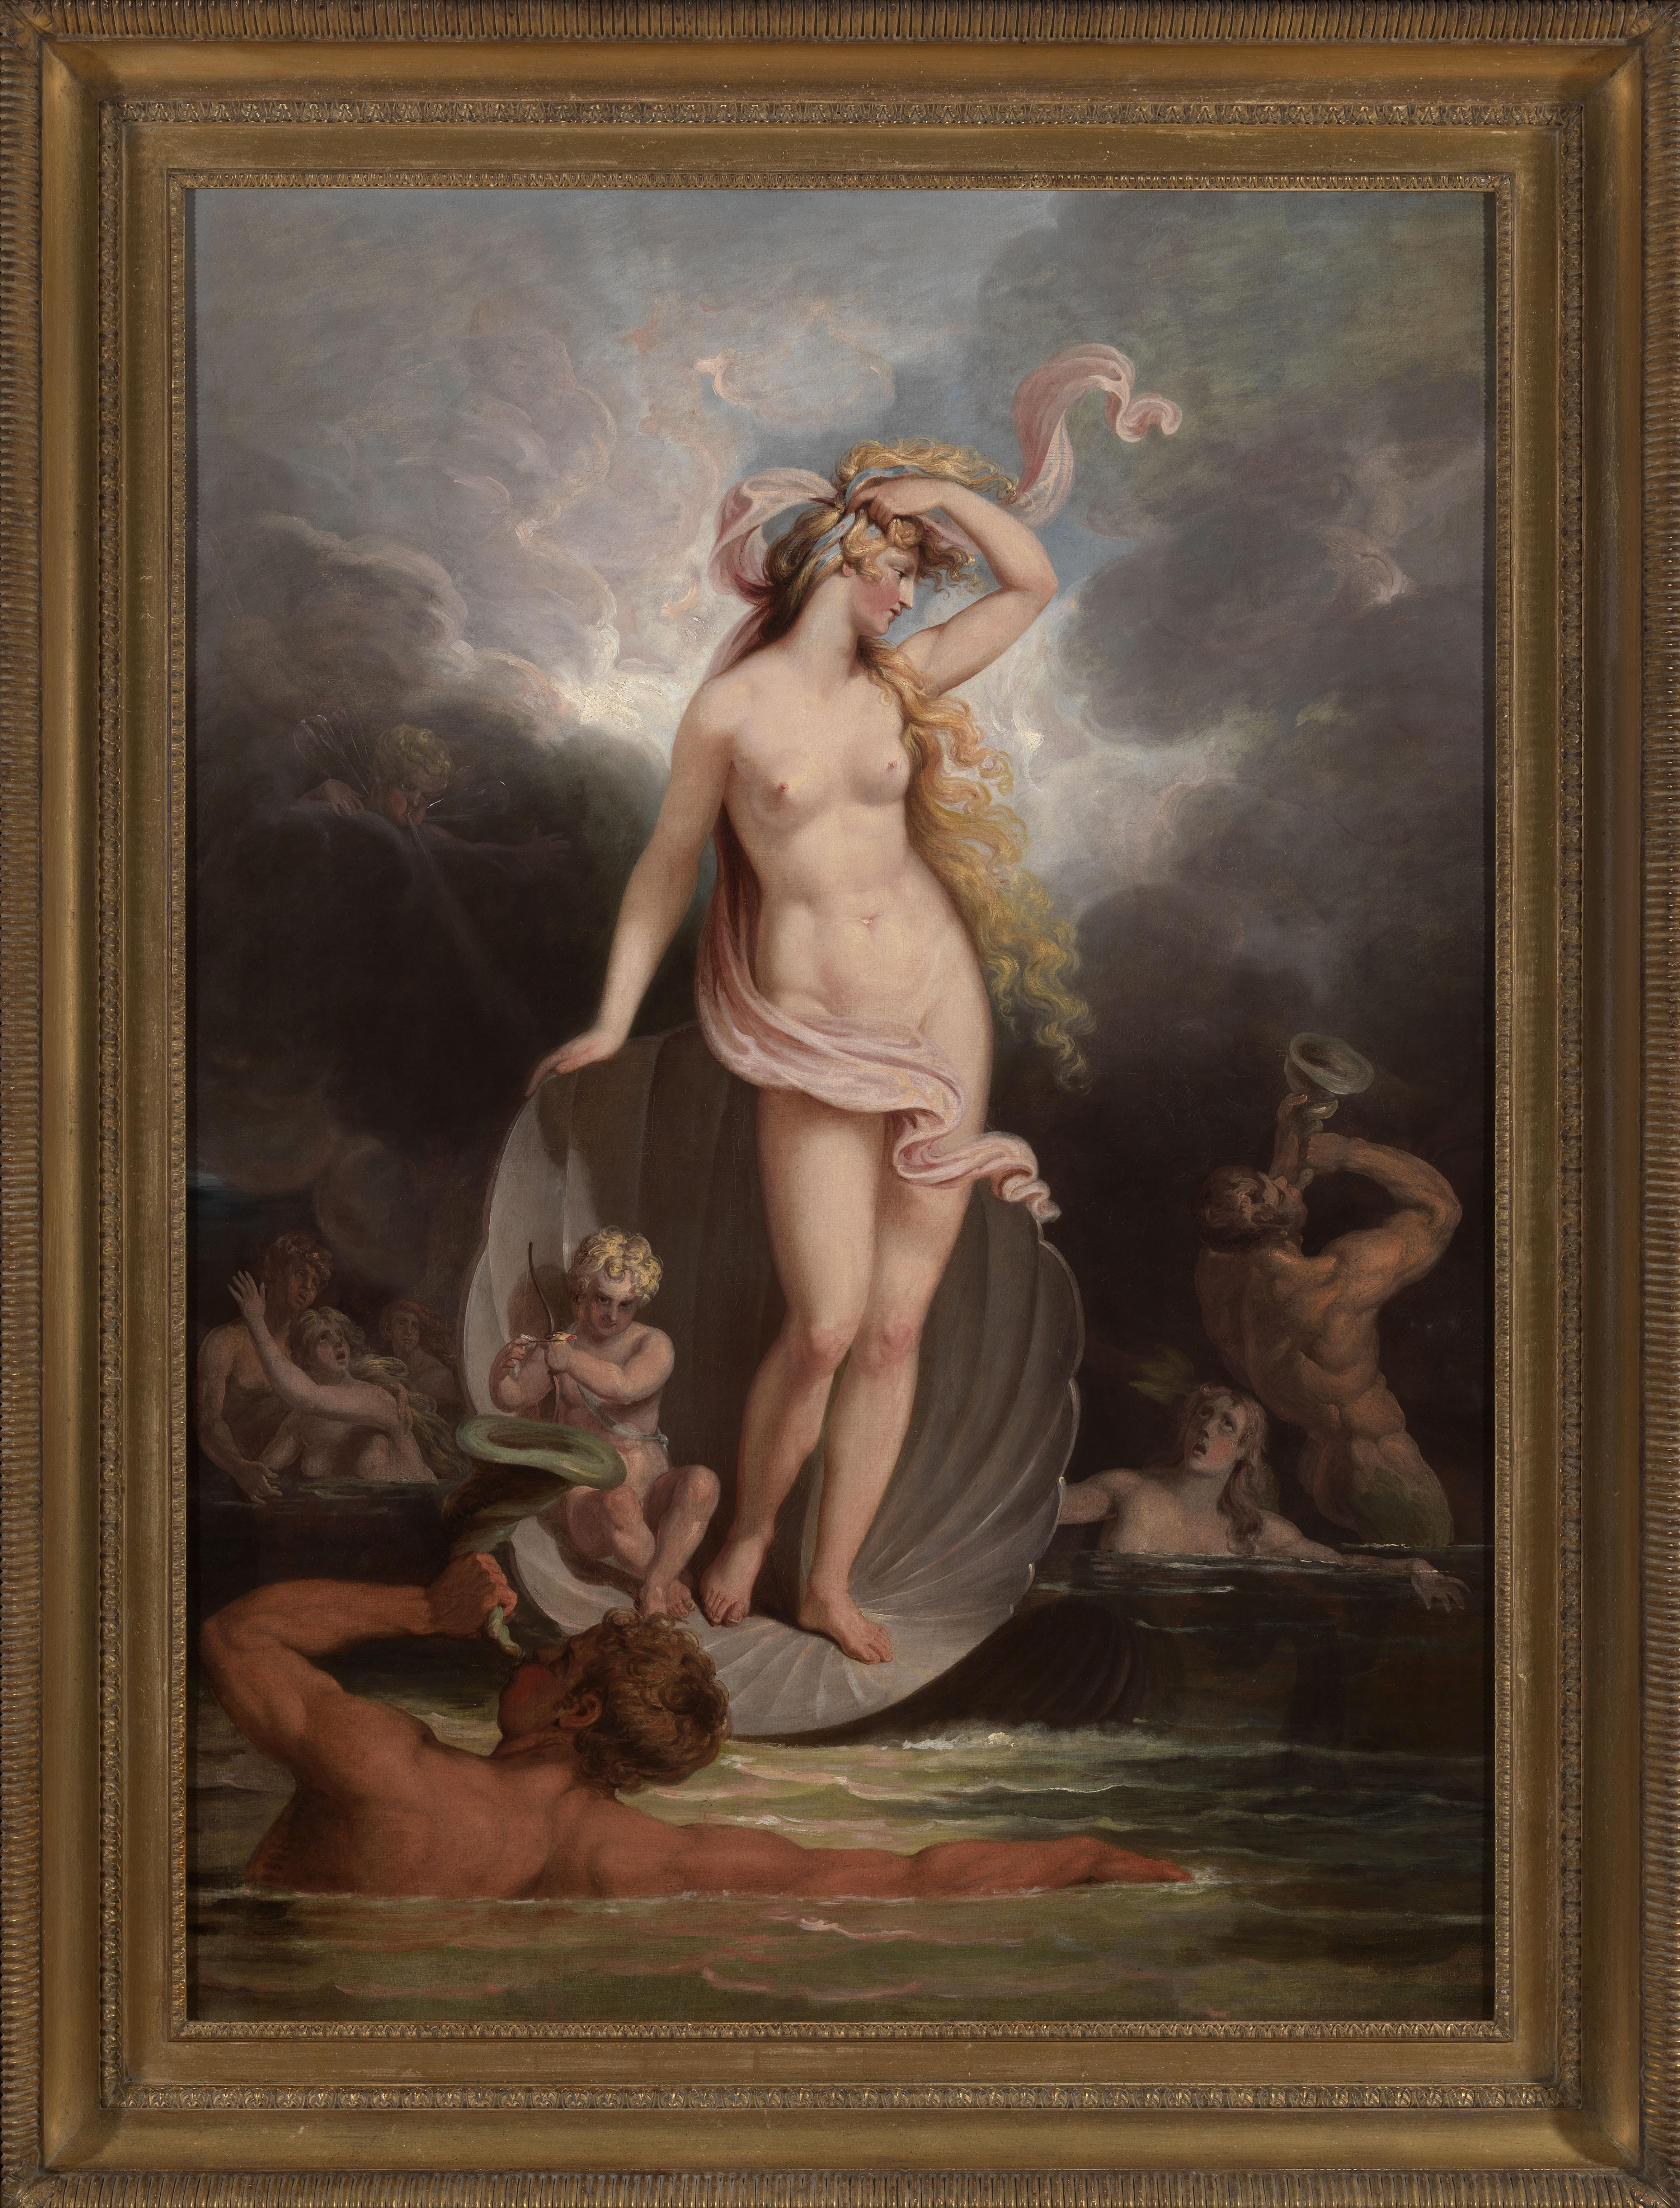 18th century allegorical painting of The Triumph of Beauty